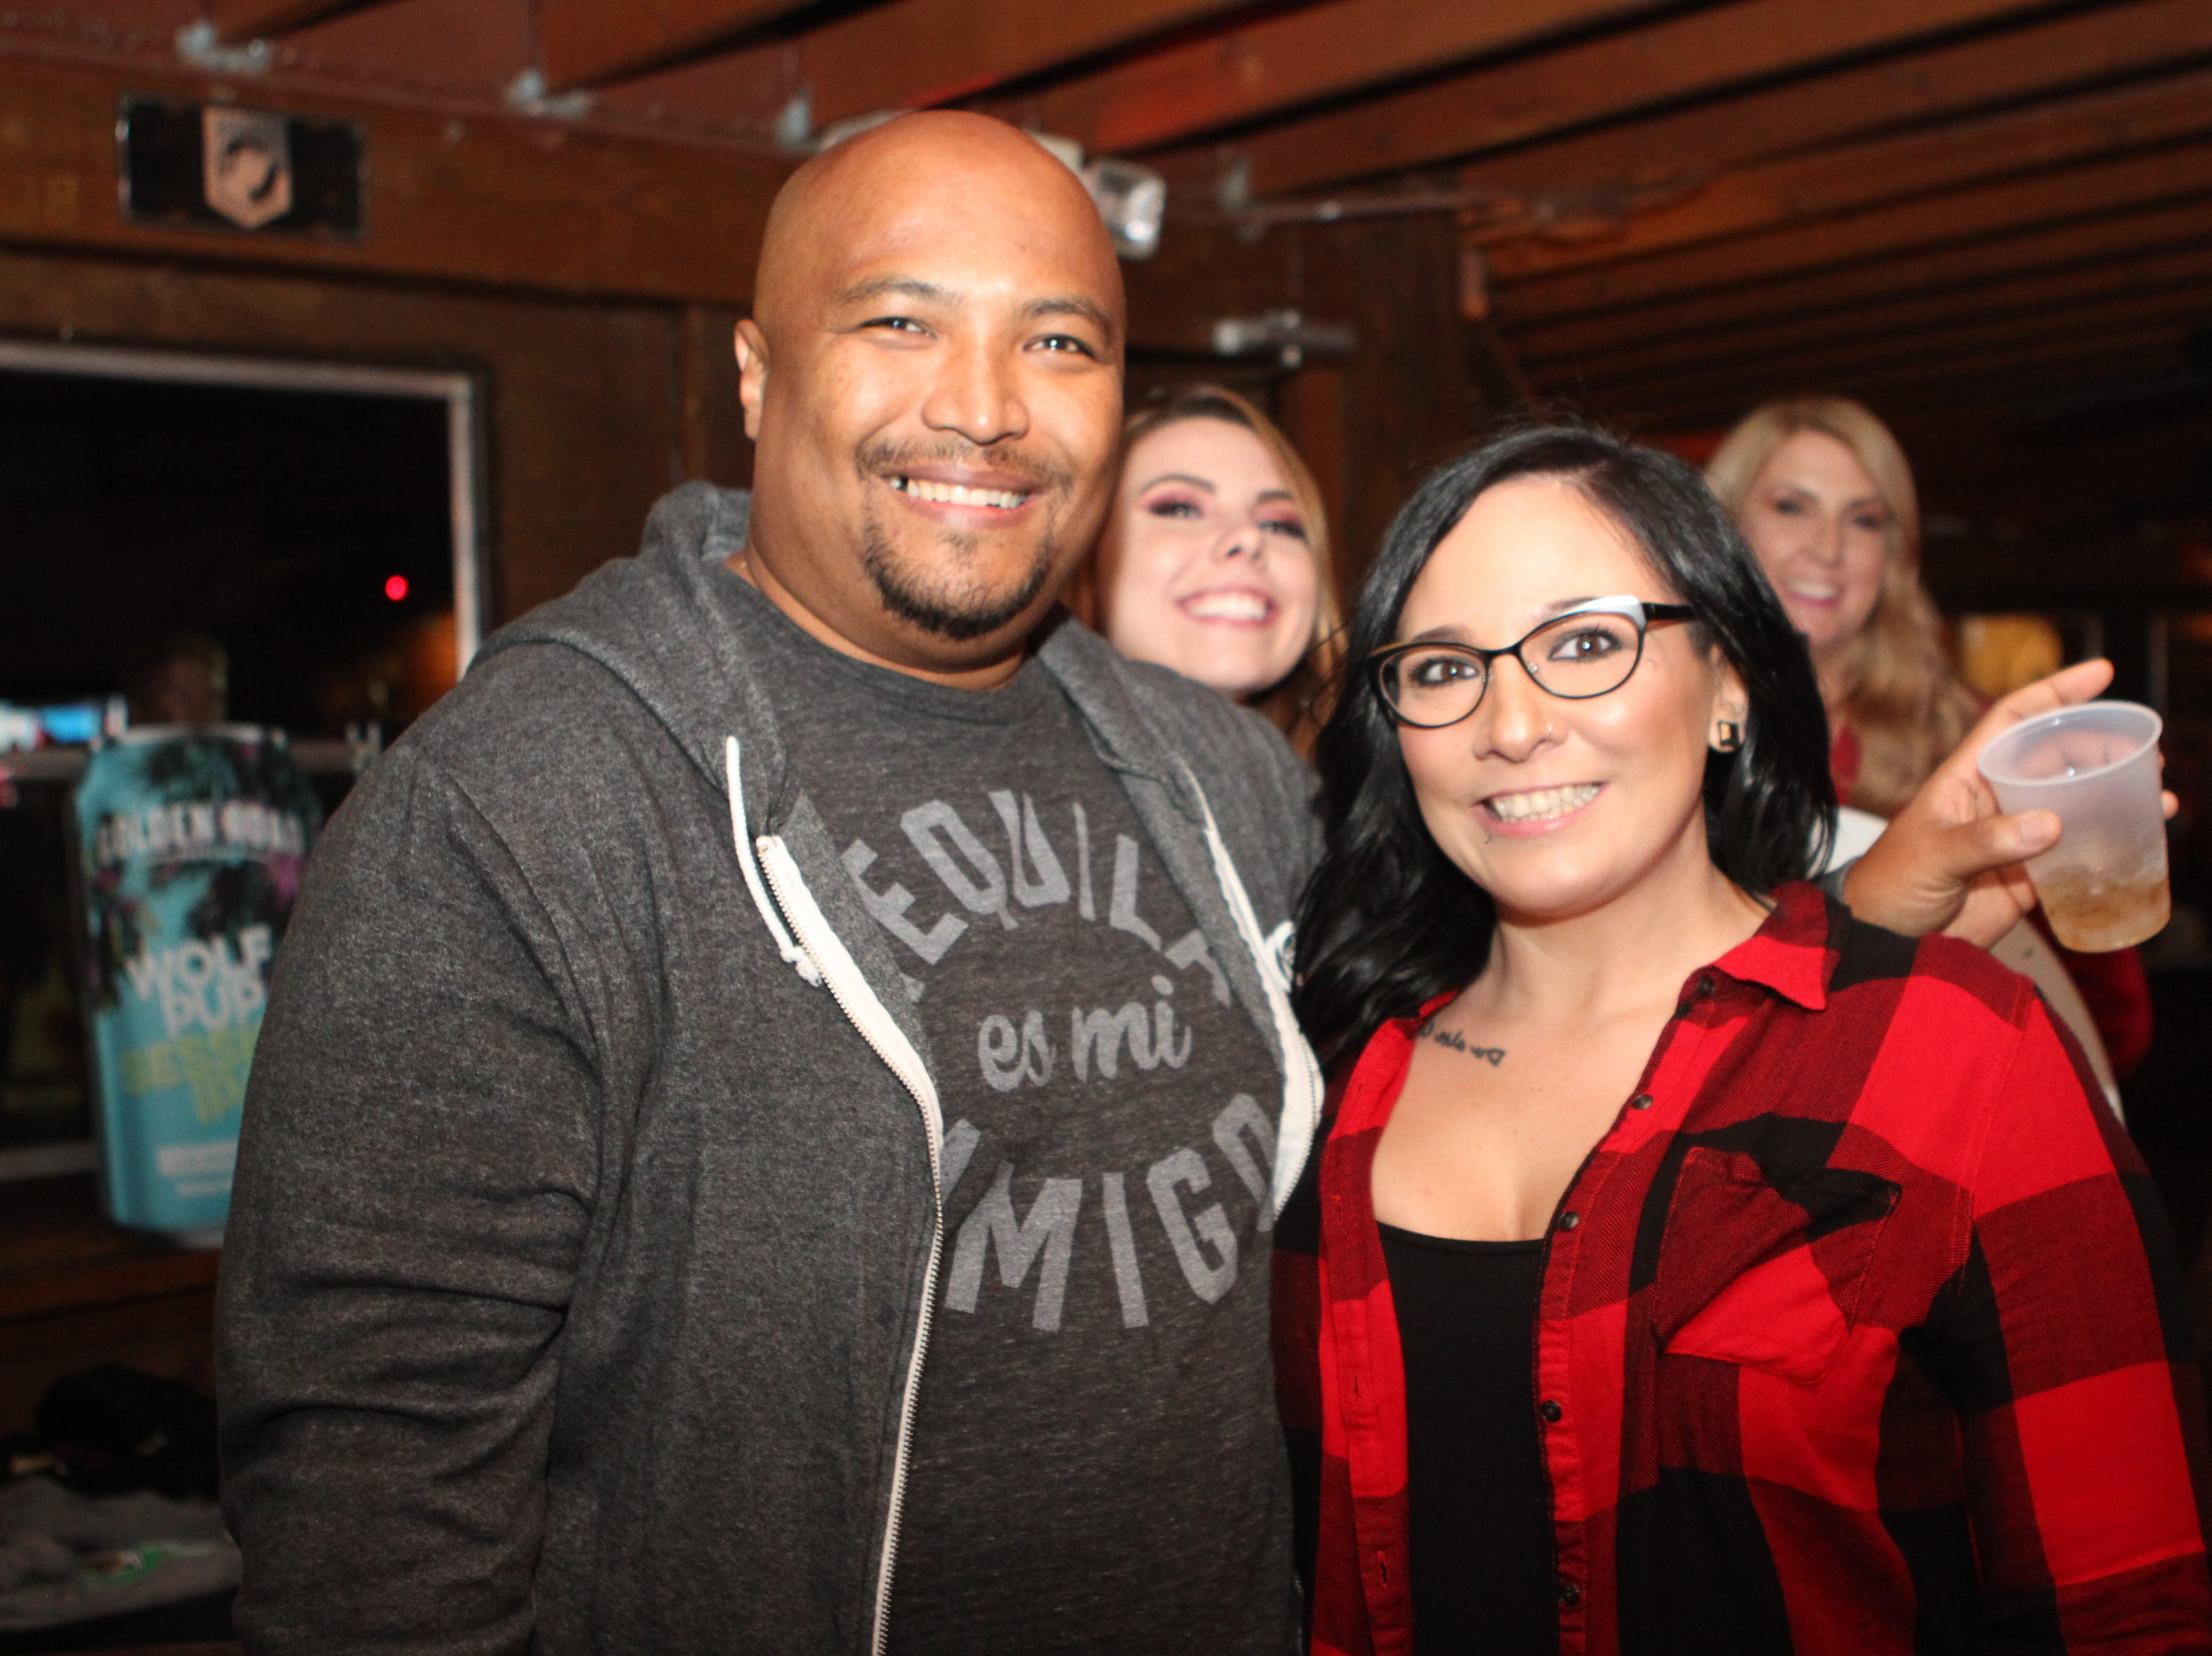 Clarksville Chive's Ronnie Vincenti and Nadine Houston at Gettin' Stupid For Cupid 3 at O'Connor's on Saturday, October 20, 2018.